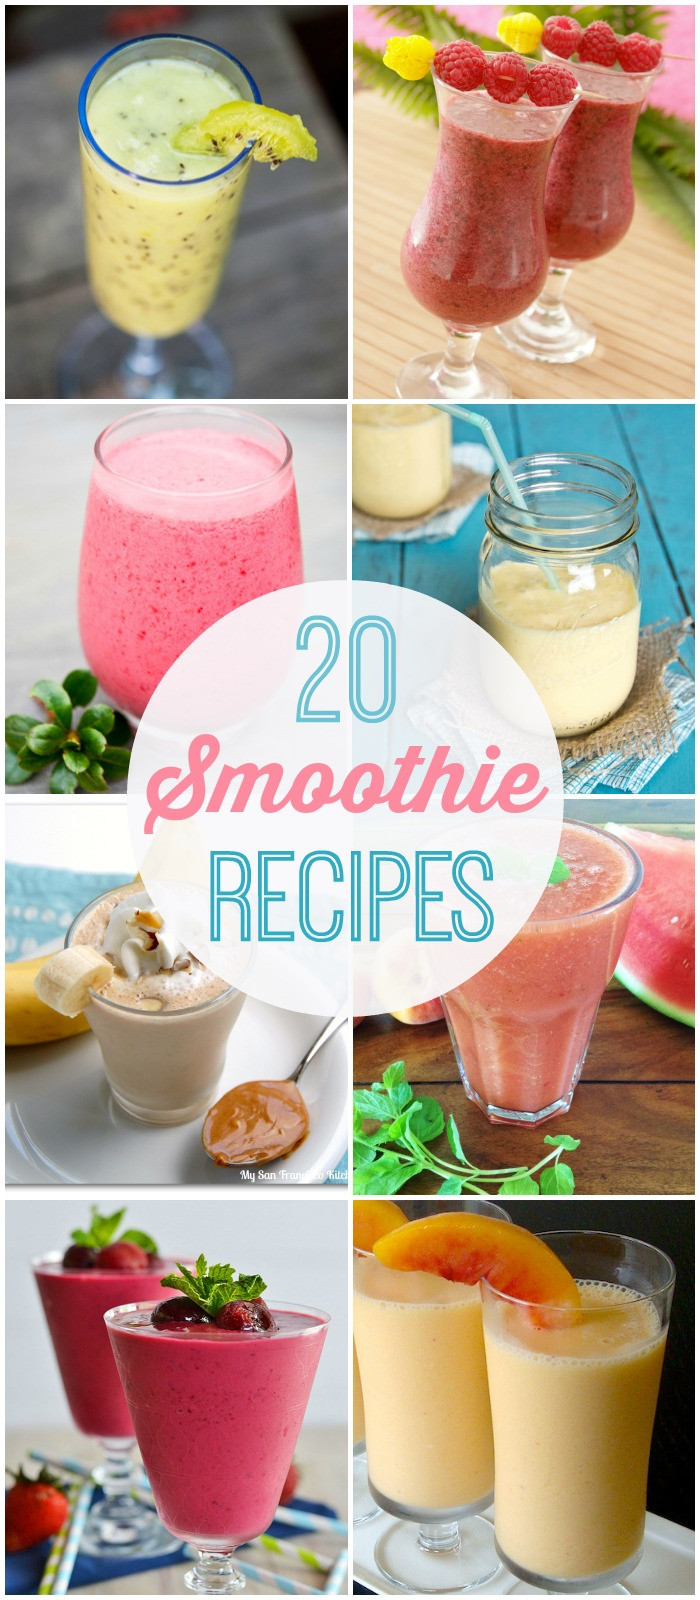 Summer Smoothies Recipes  20 Smoothie Recipes